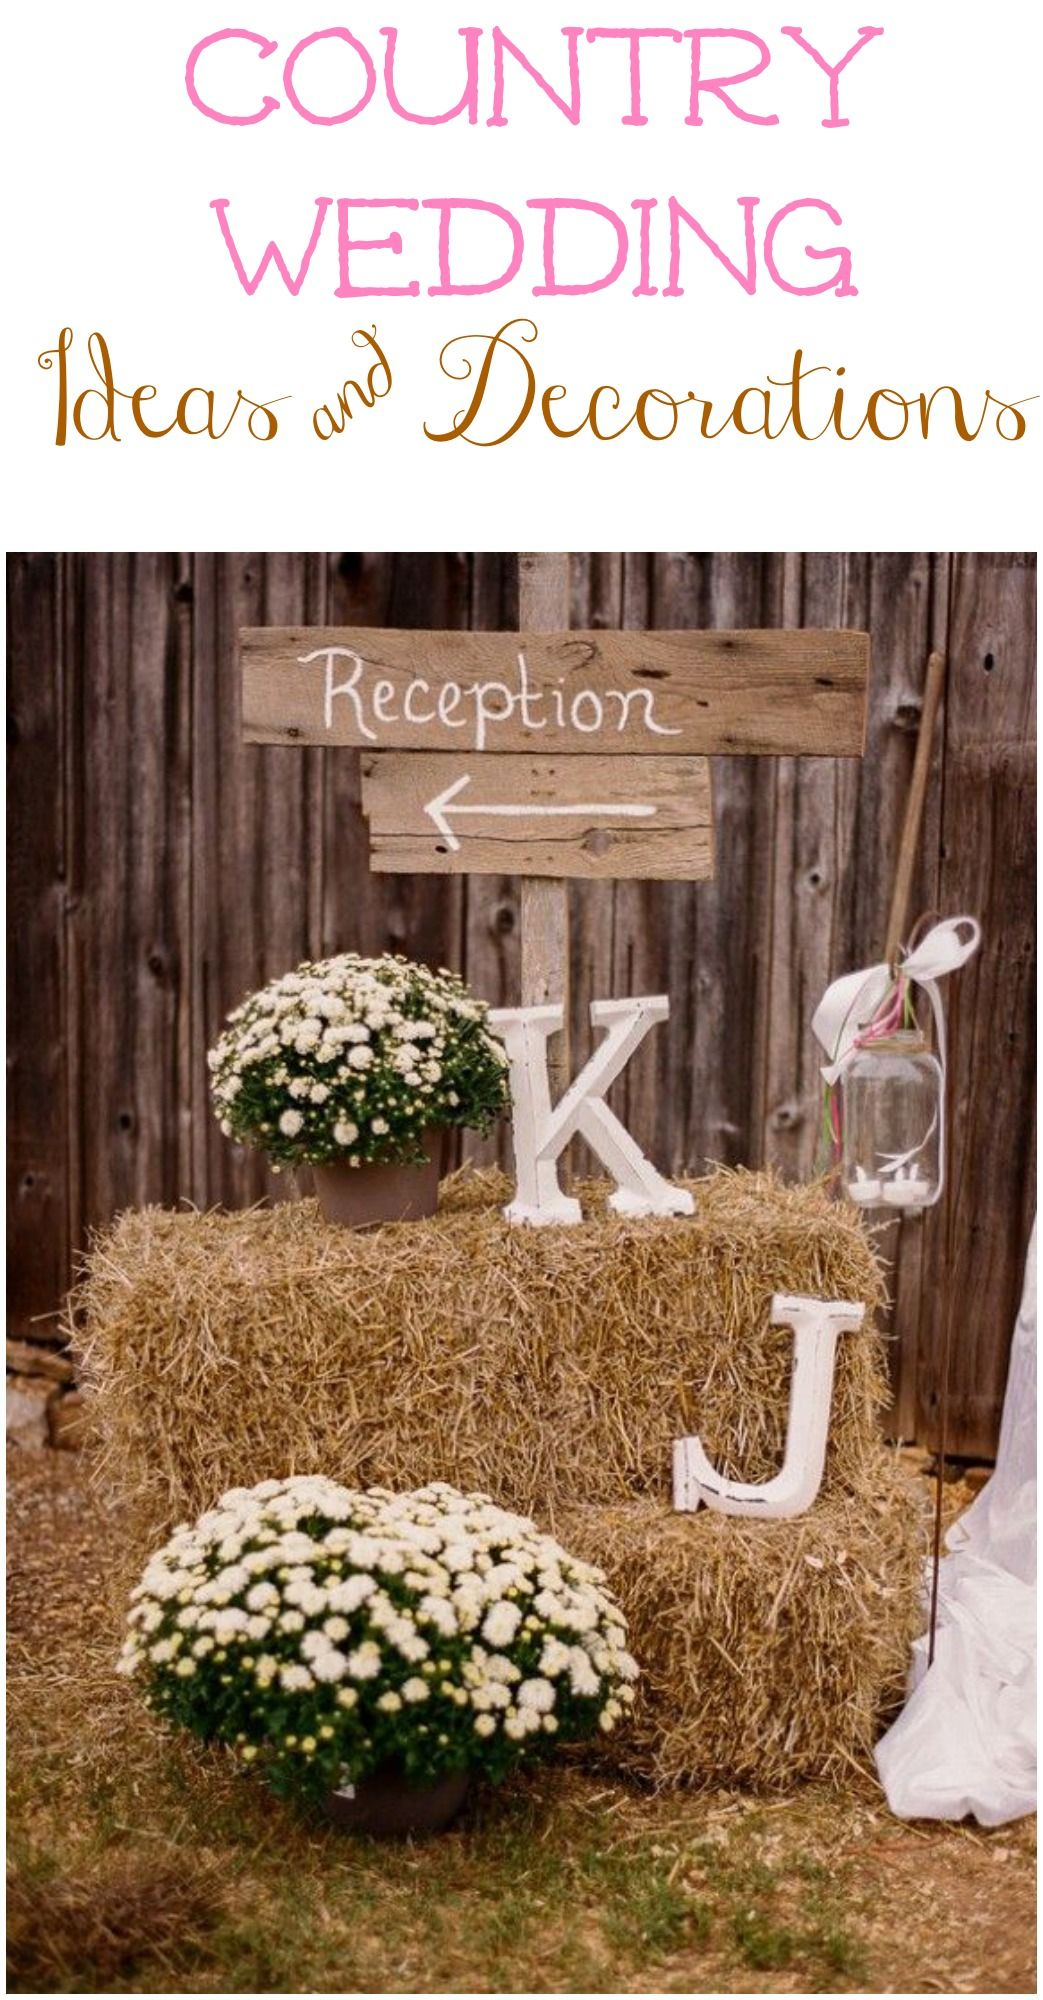 Decorate your country wedding with all of these great ideas